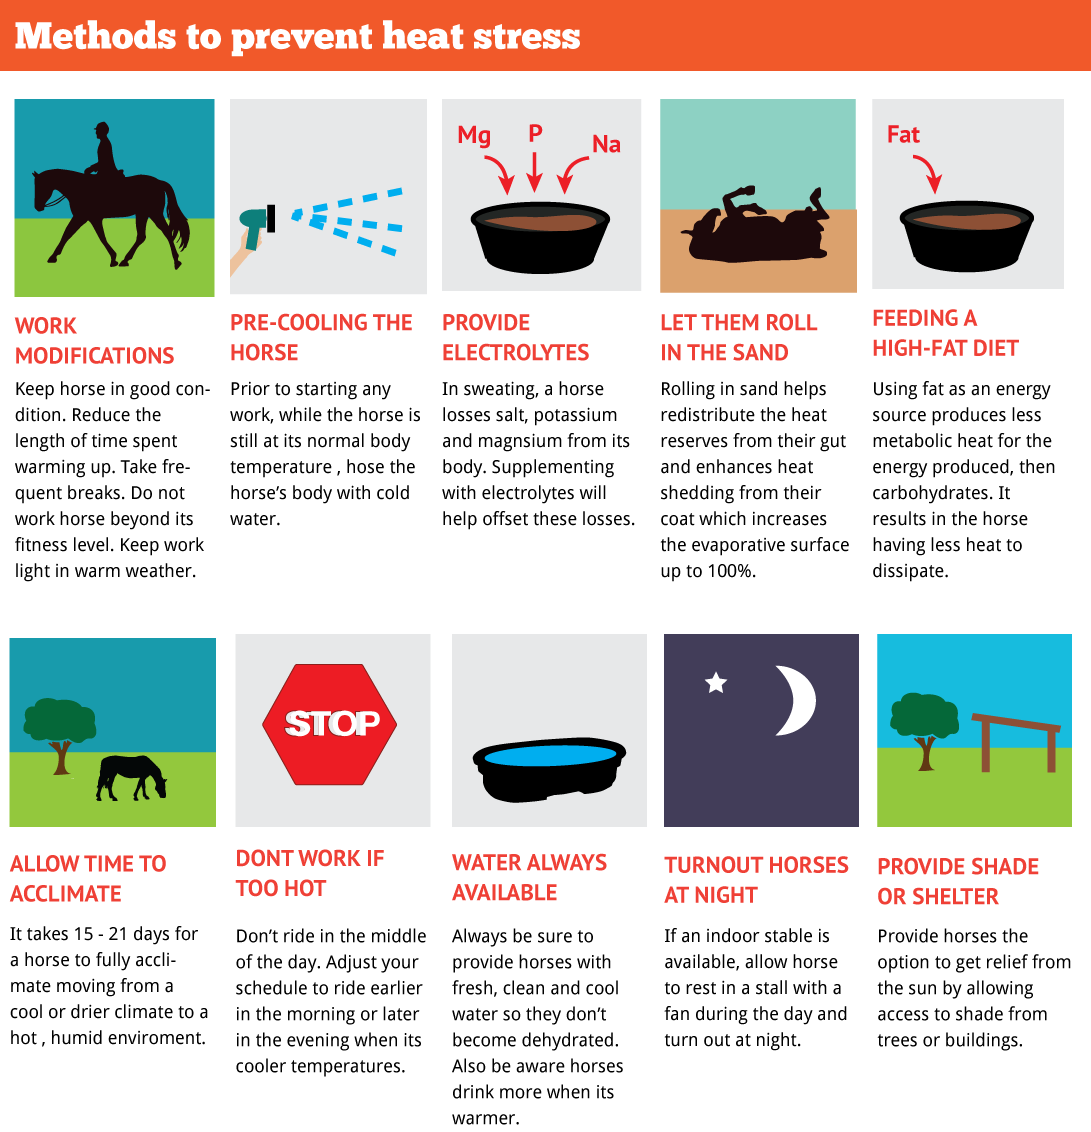 Methods to prevent heat stress